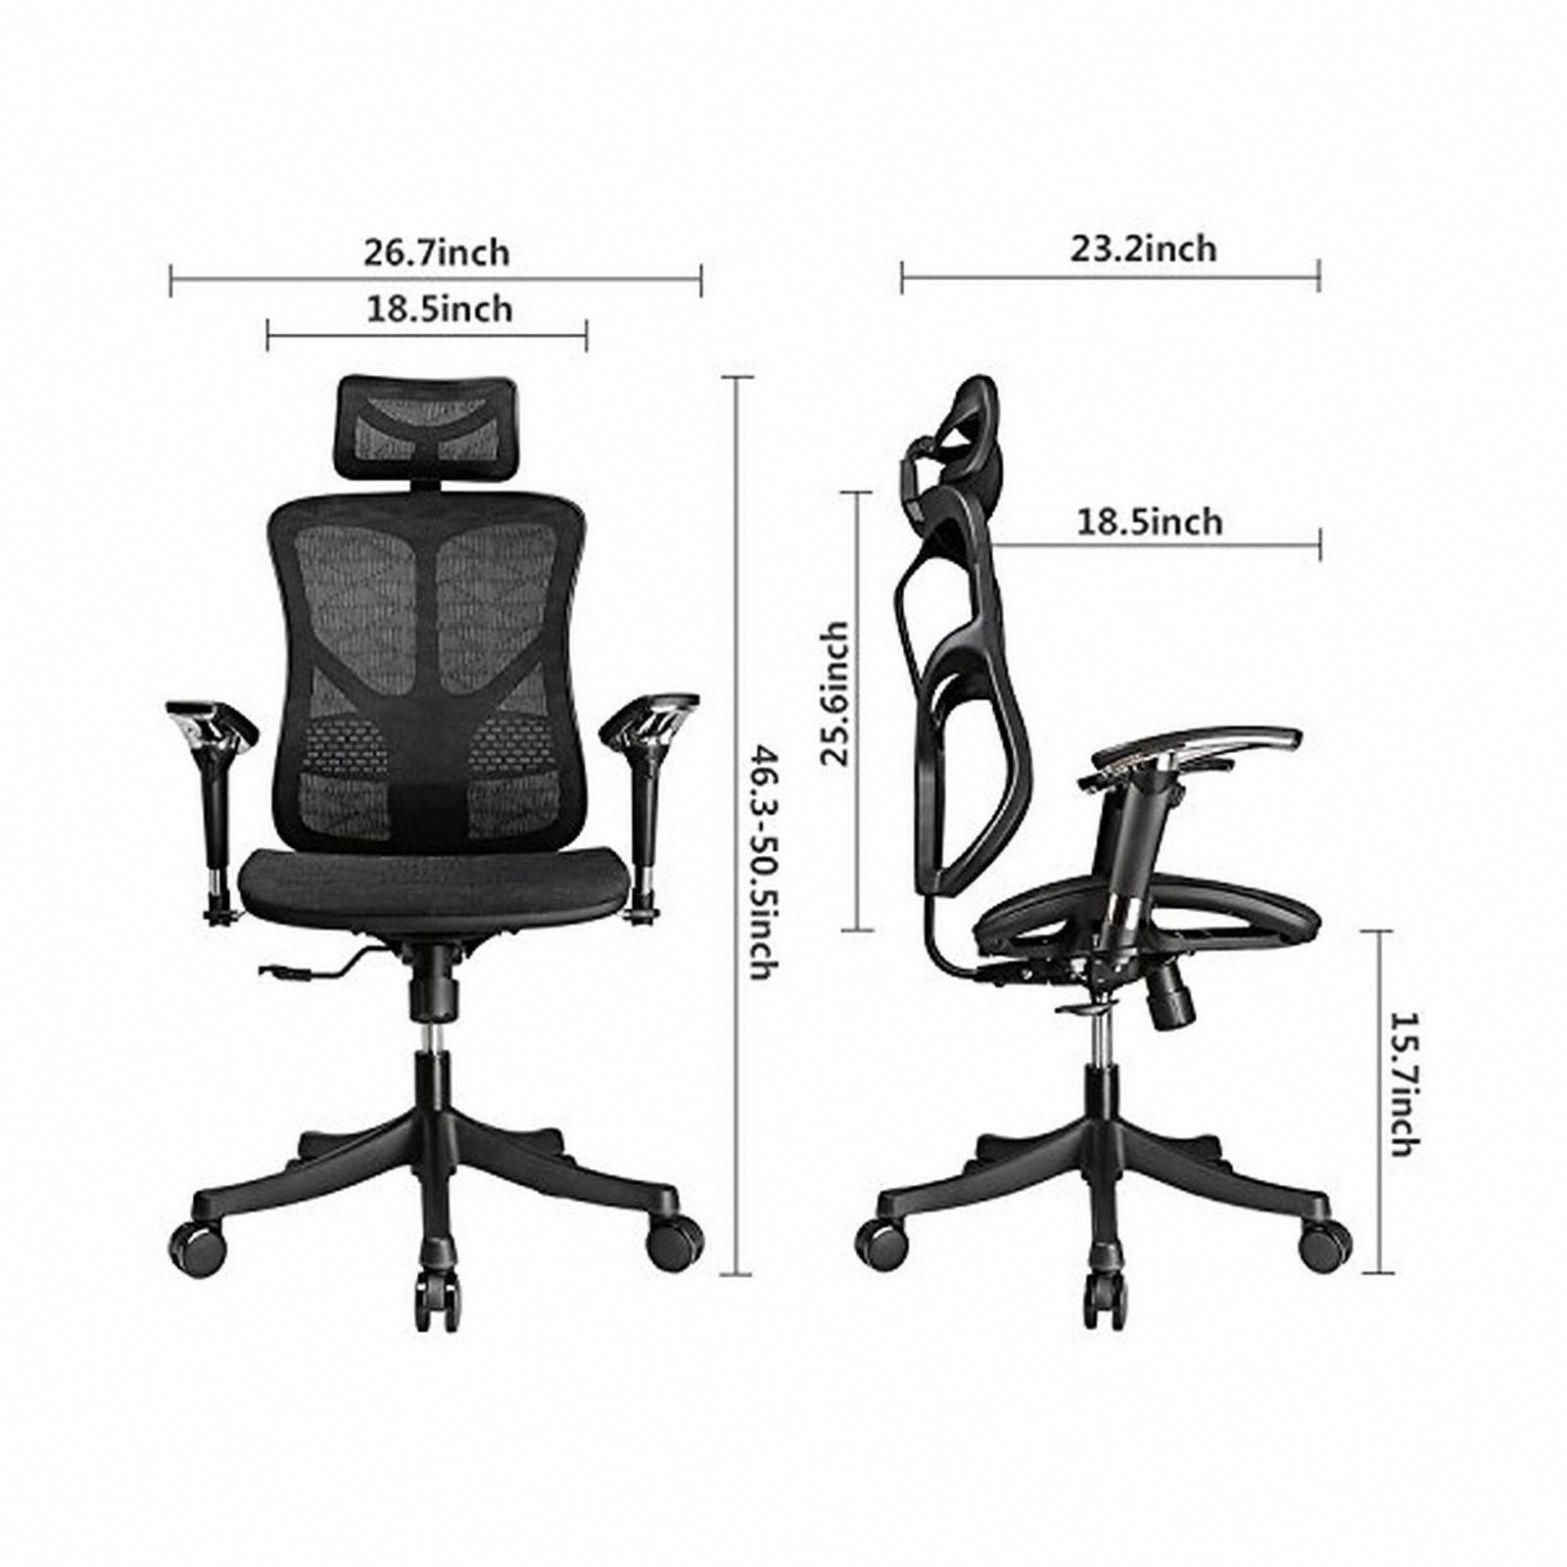 Meshofficechair With Images Used Office Chairs Outdoor Dining Chair Cushions Most Comfortable Office Chair